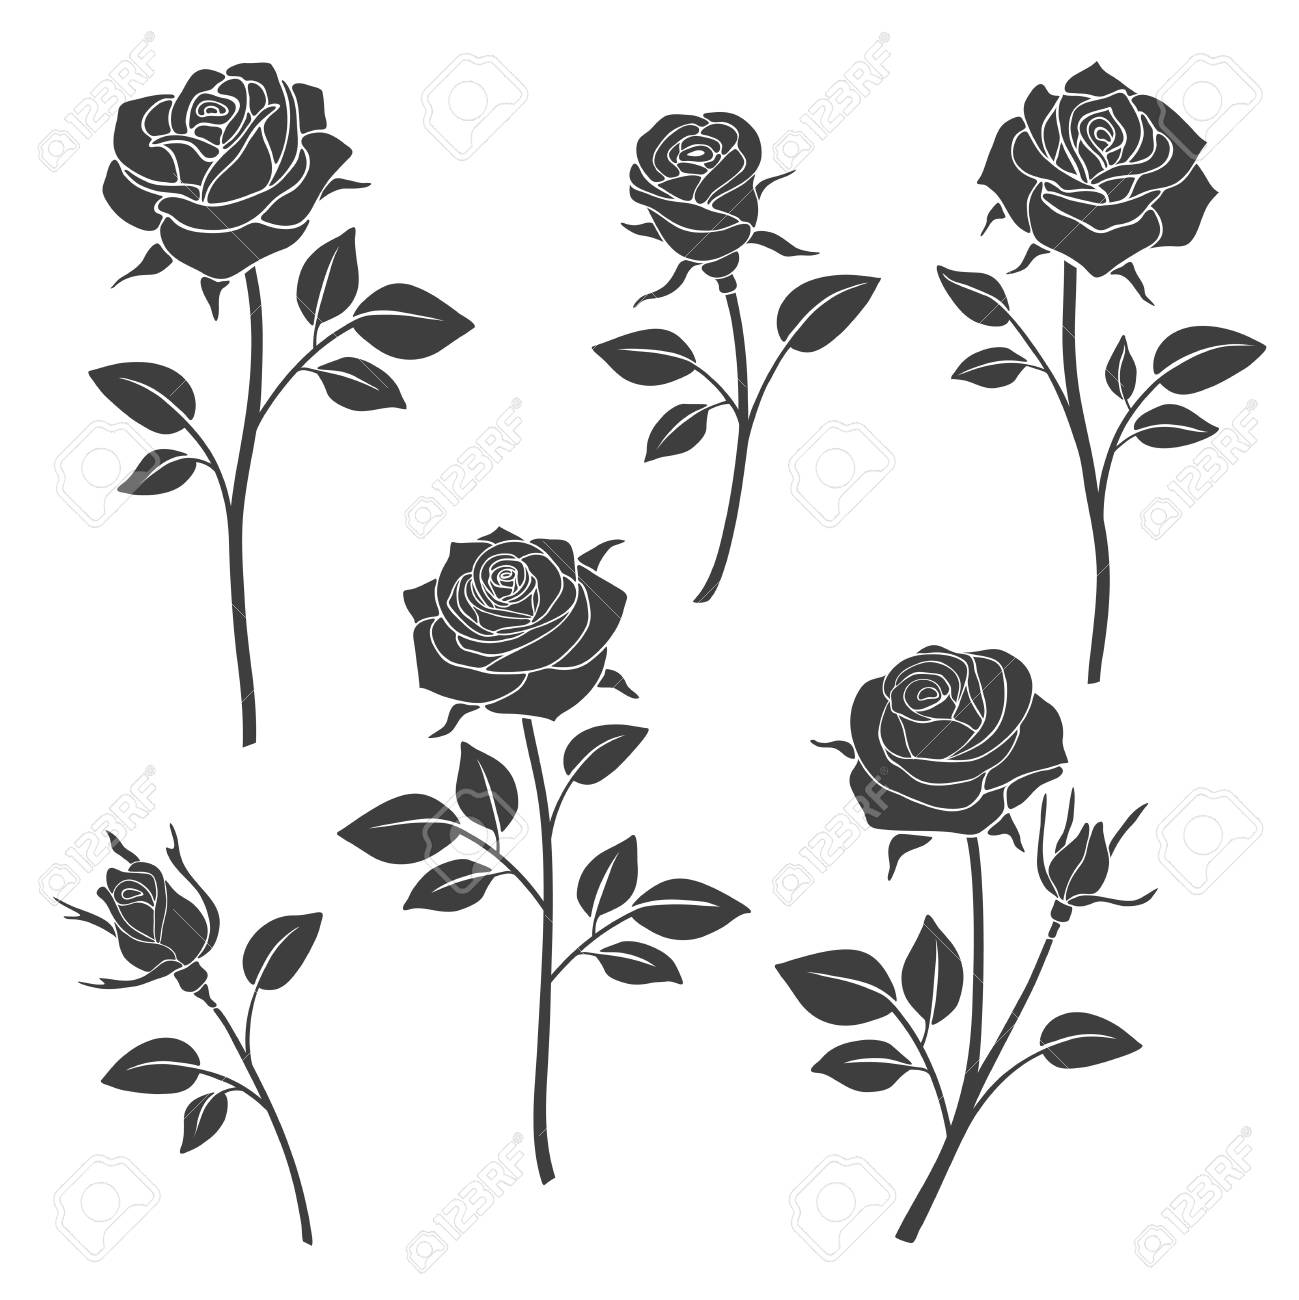 Rose Buds Vector Silhouettes Flowers Design Elements Monochrome